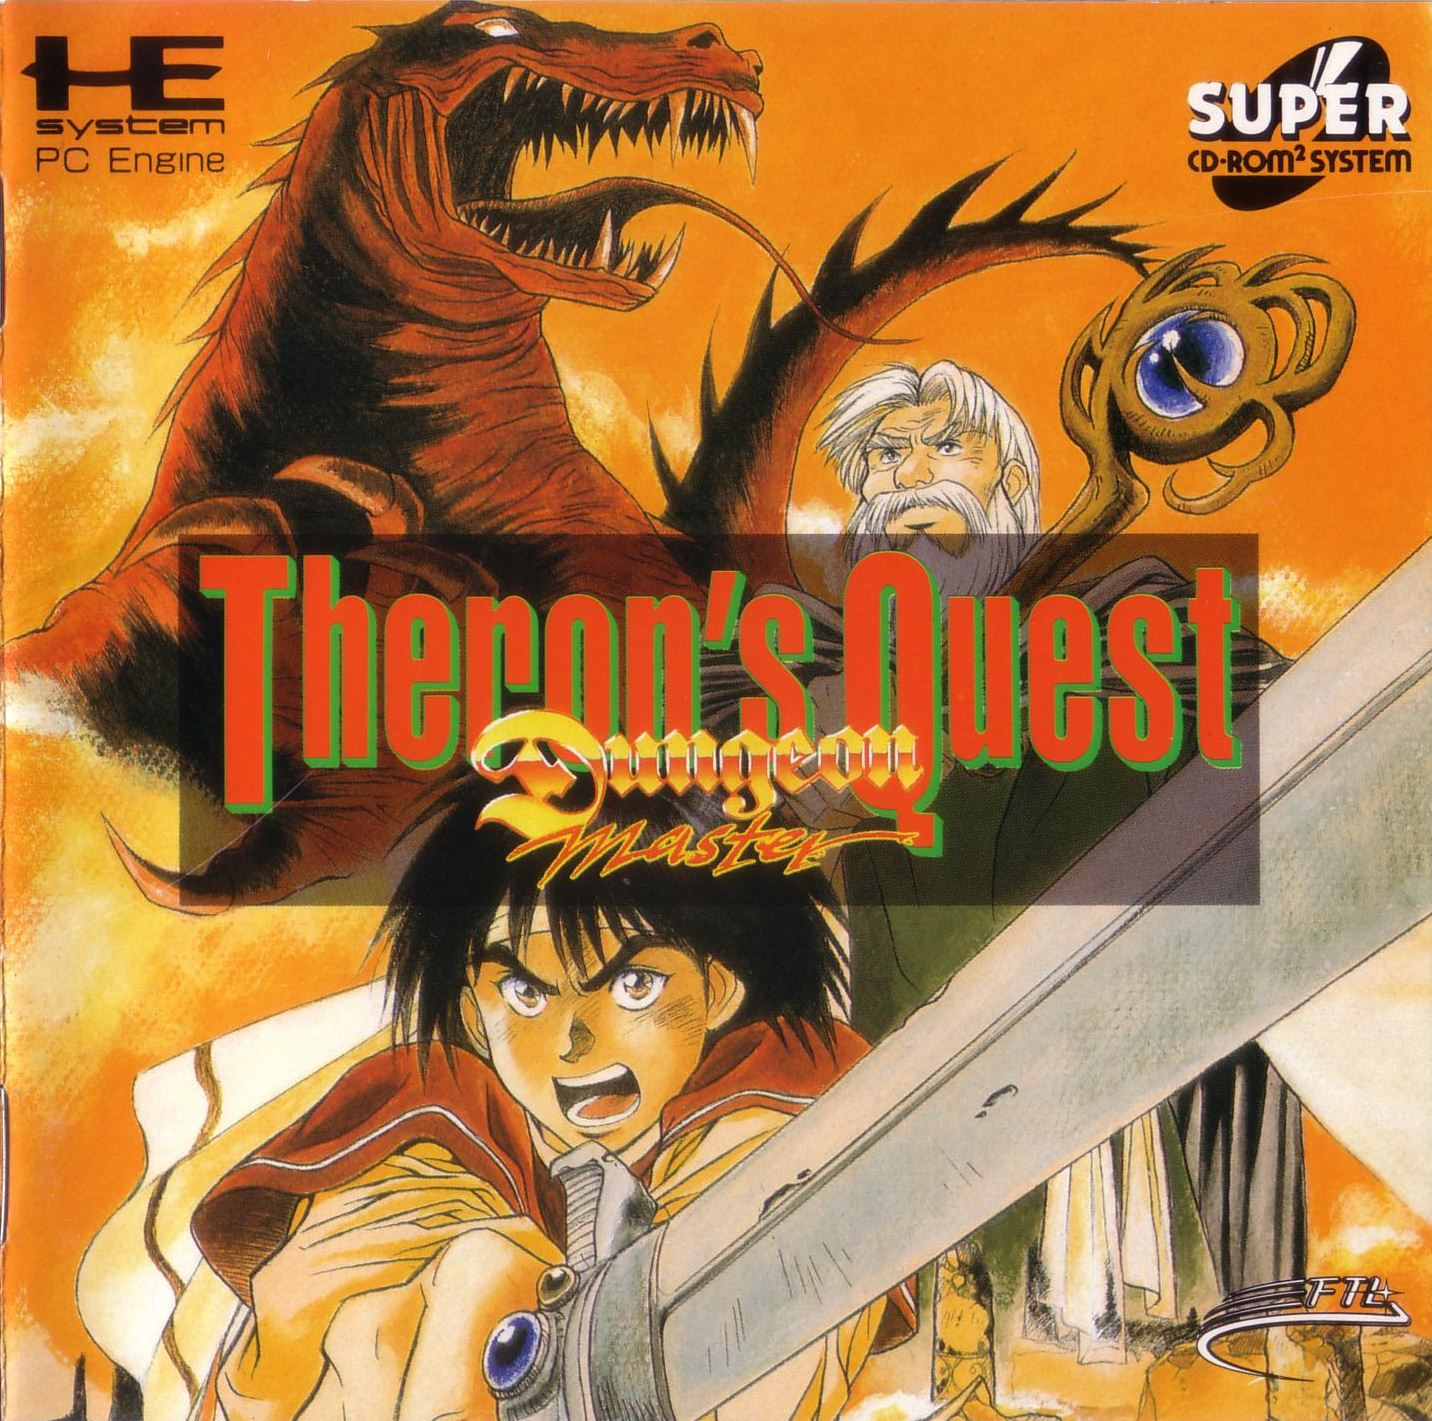 Game - Theron's Quest - JP - PC Engine - Booklet - Page 001 - Scan